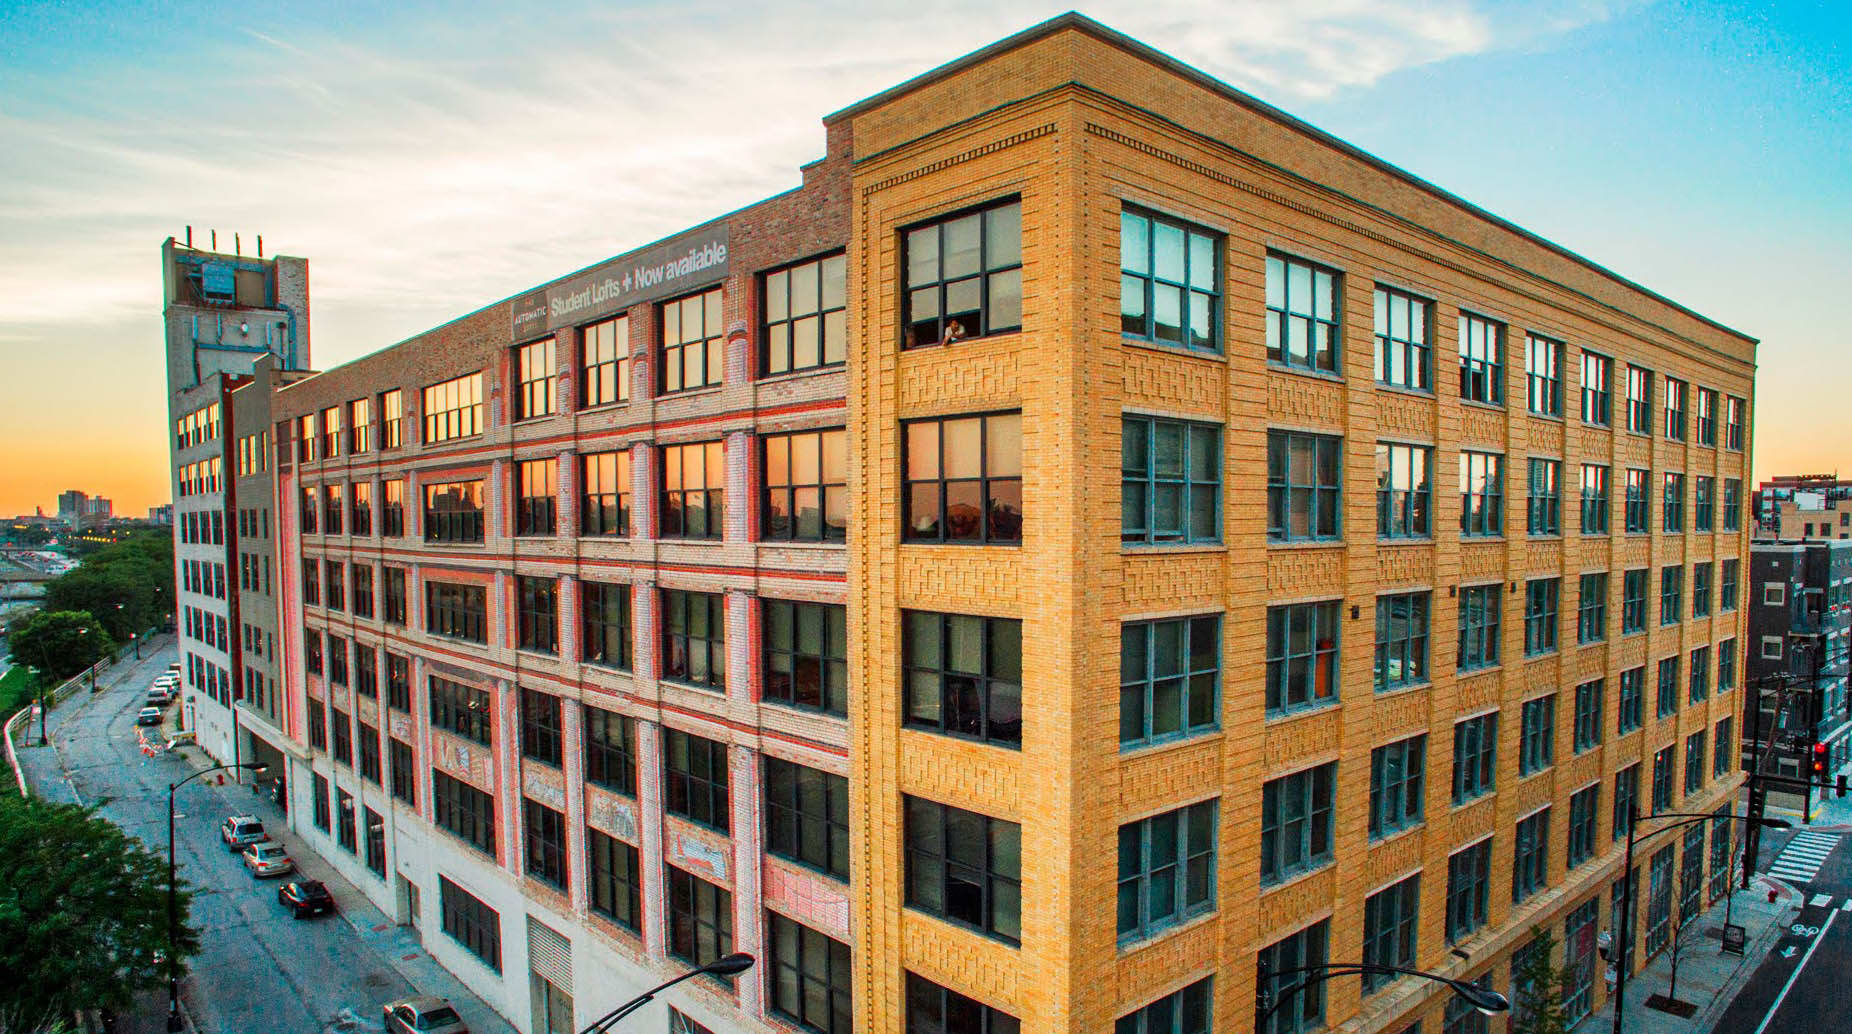 Loft Style Apartments For Rent in Chicago, Illinois